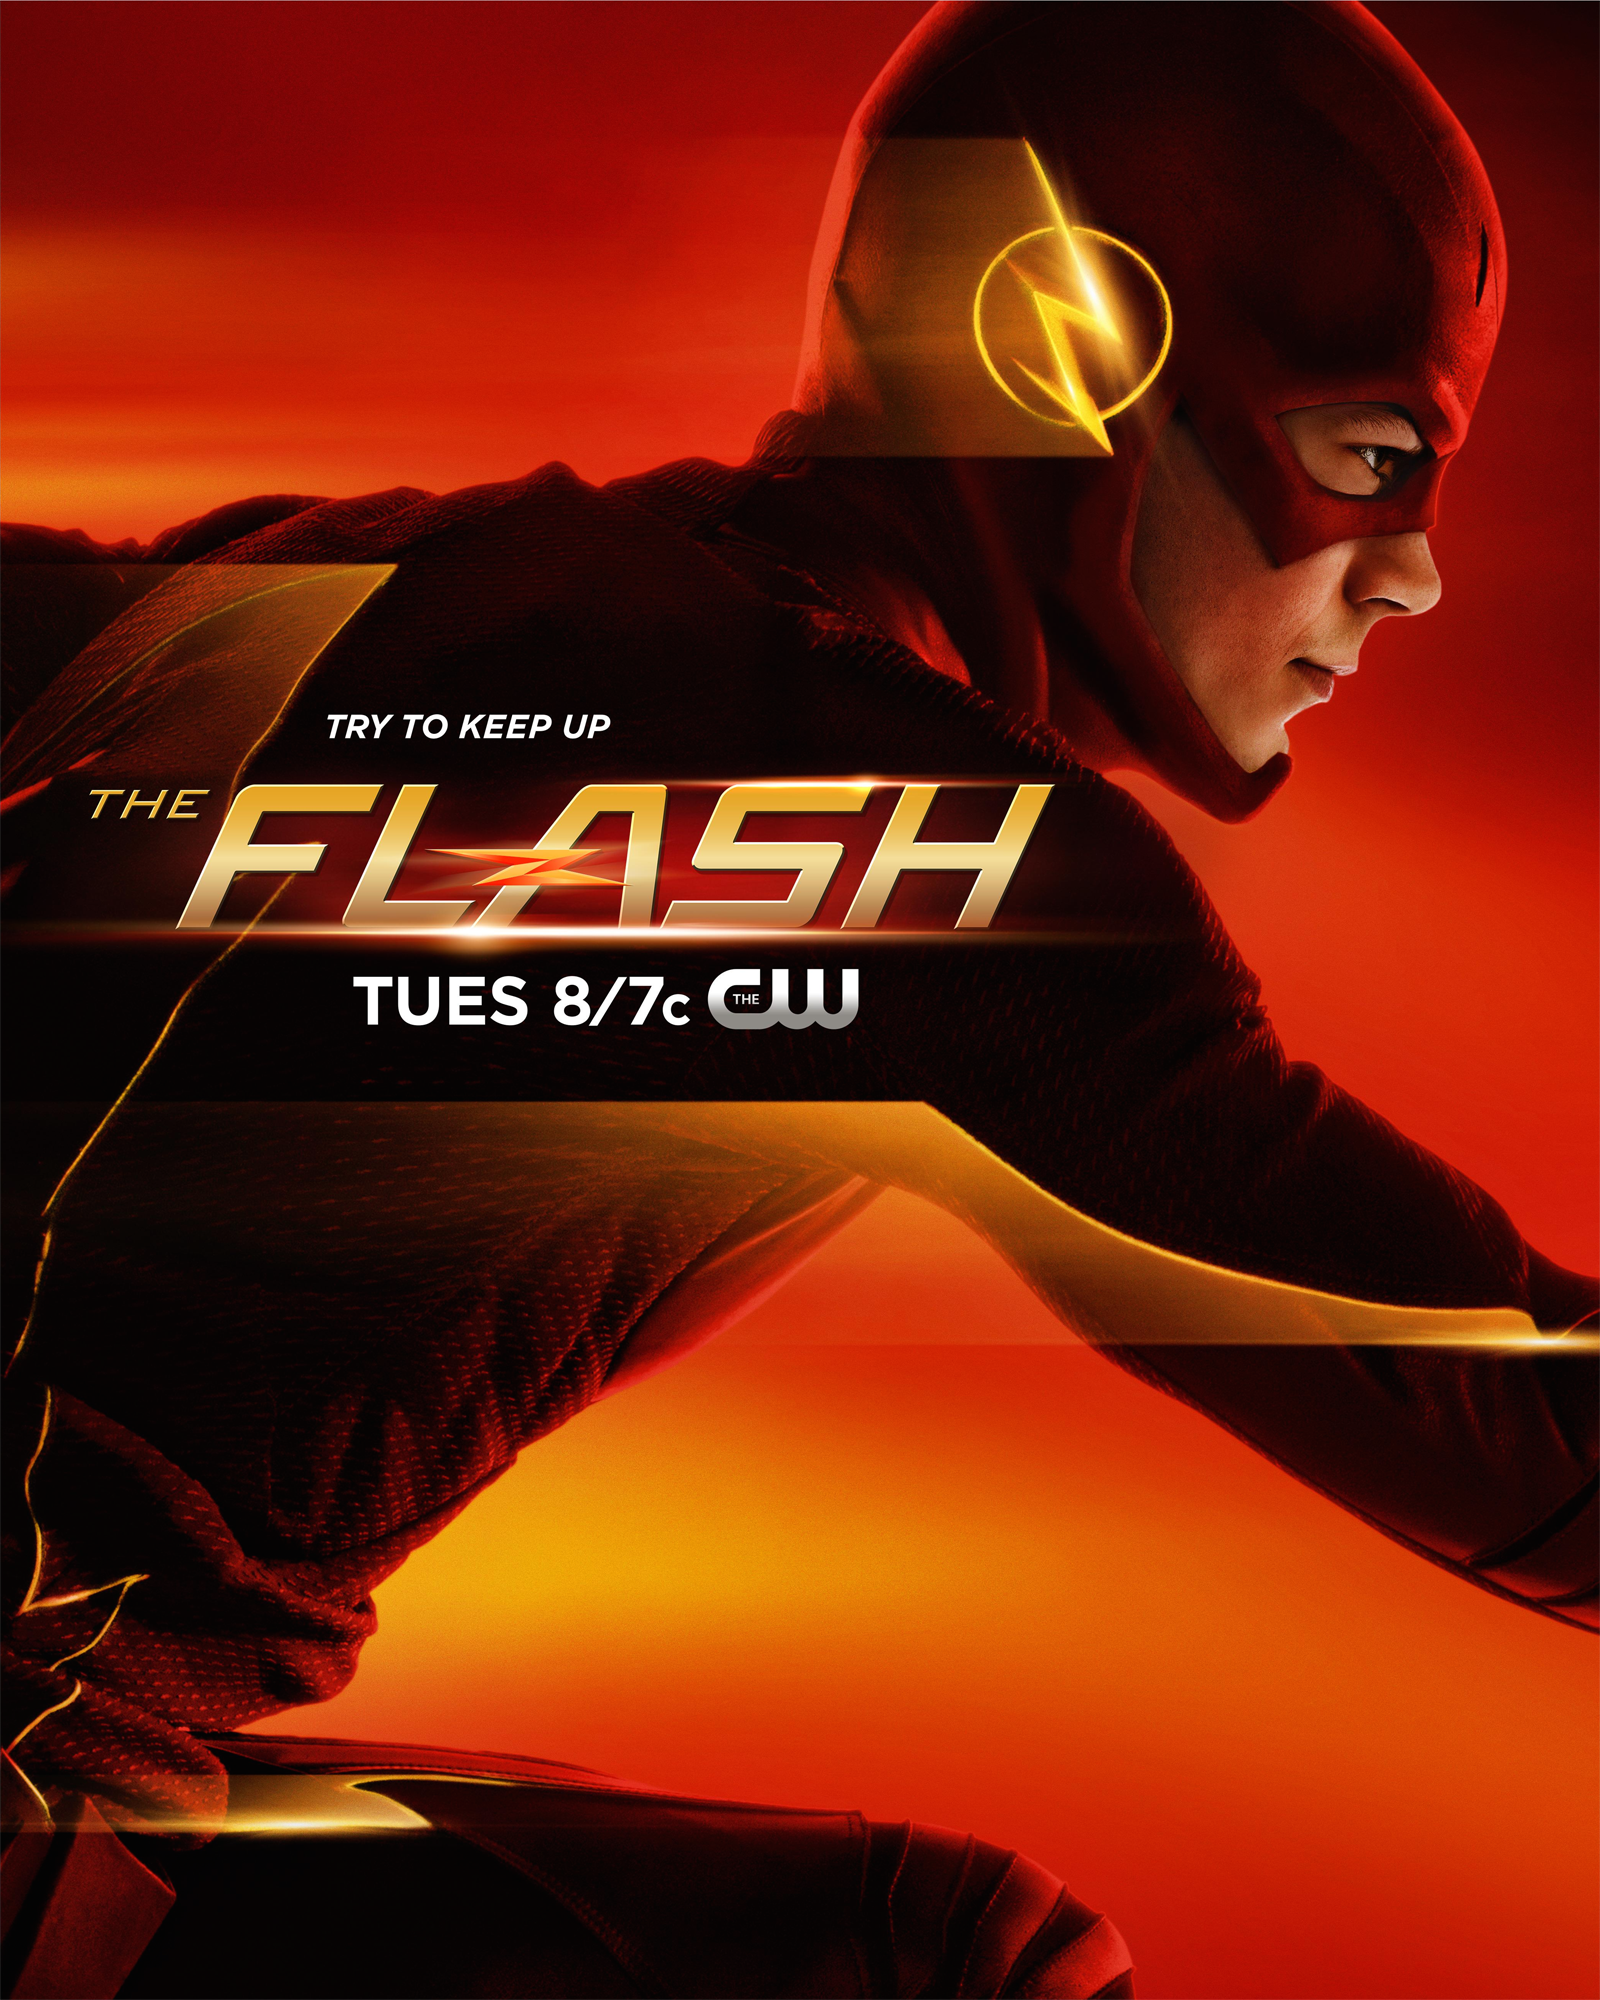 Uitzonderlijk Image - The Flash promo poster - Try to keep up.png   Arrowverse  @LG58